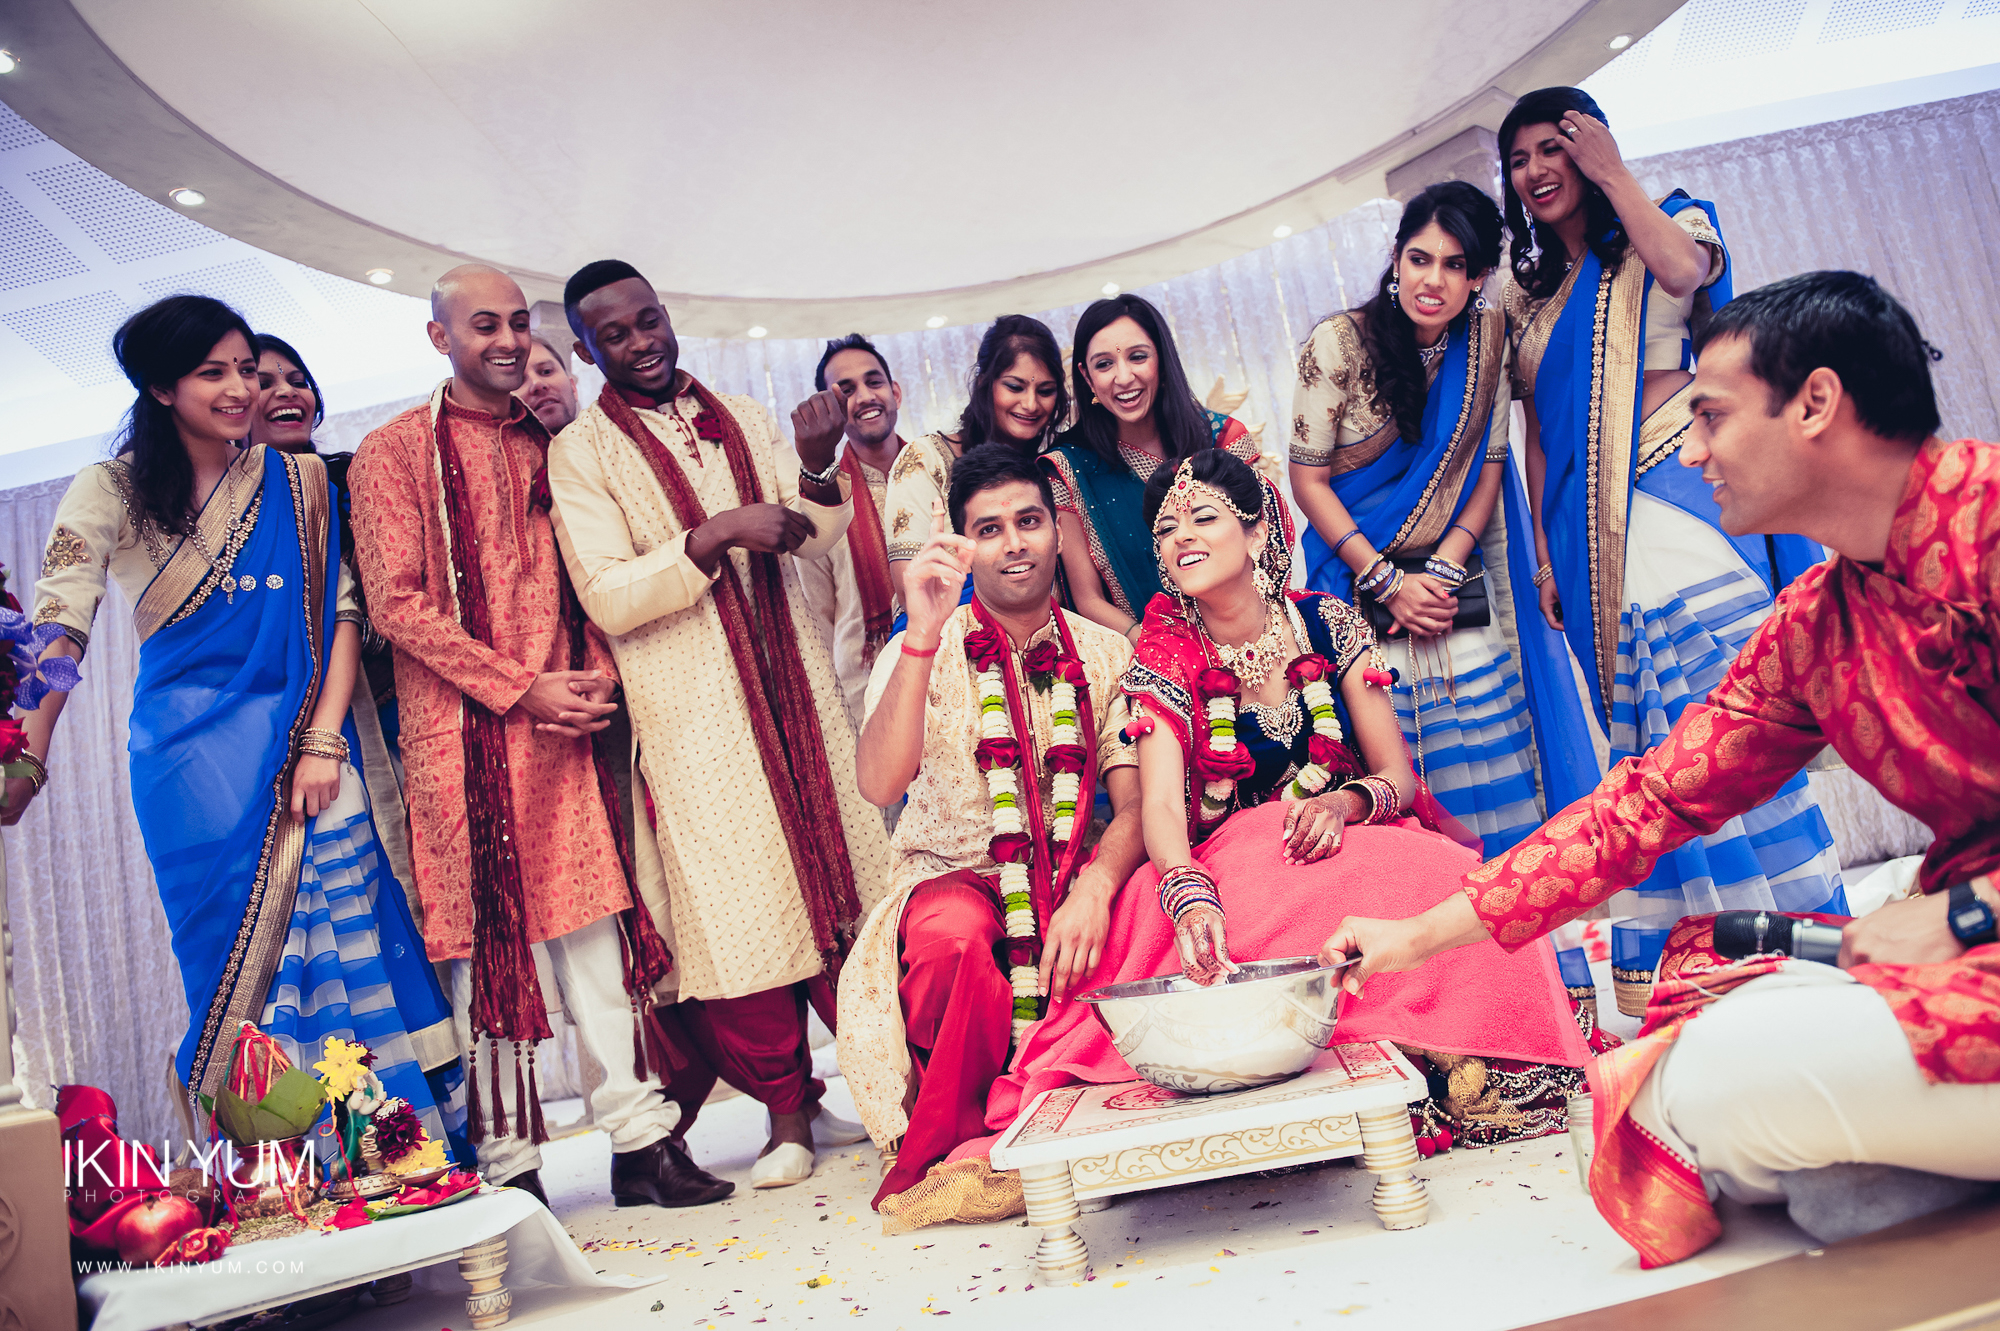 Oshwal Centre Wedding - Ikin Yum Photography-101.jpg